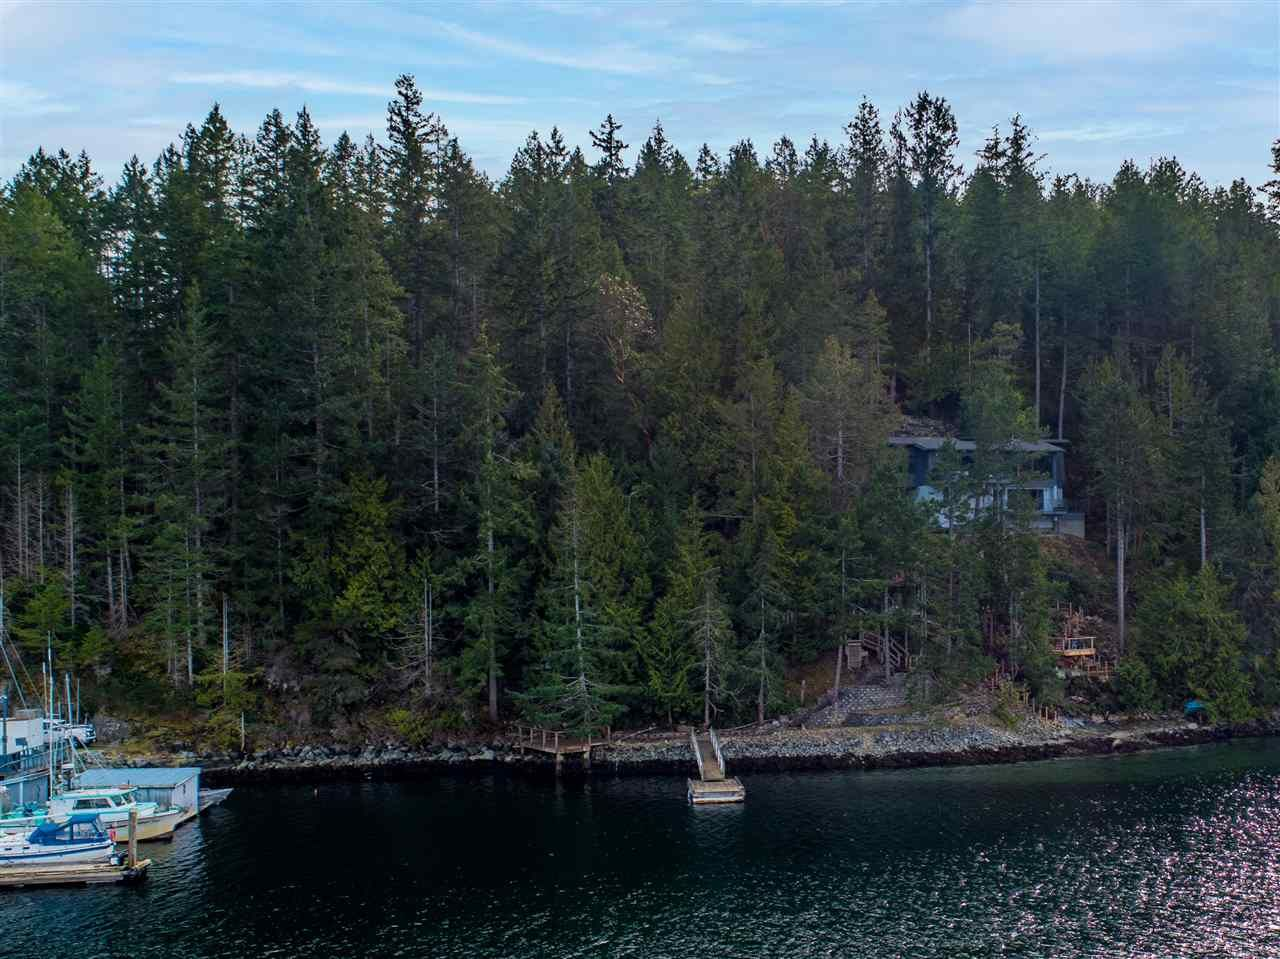 Photo 10: Photos: 4216 FRANCIS PENINSULA Road in Madeira Park: Pender Harbour Egmont House for sale (Sunshine Coast)  : MLS®# R2549311